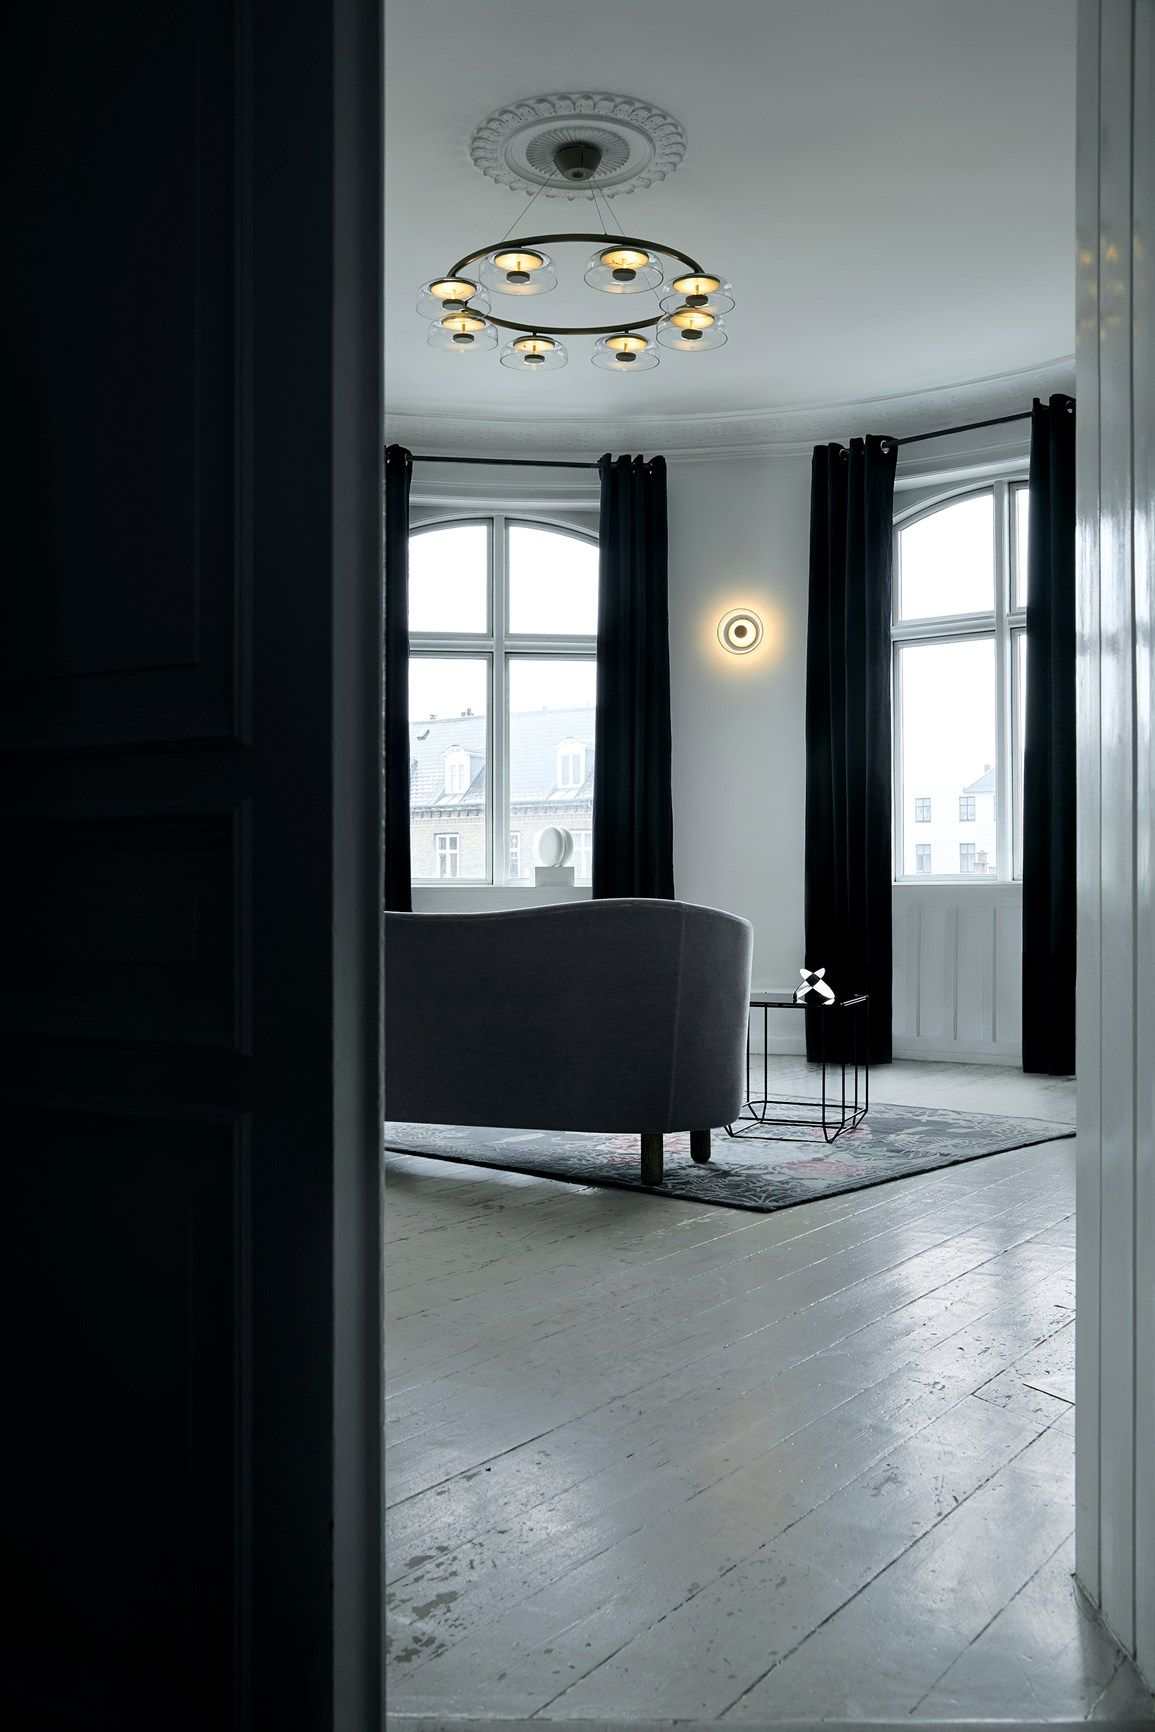 nordic lighting. Inspired By The Nordic Light And Riches Found In Nature Lighting T